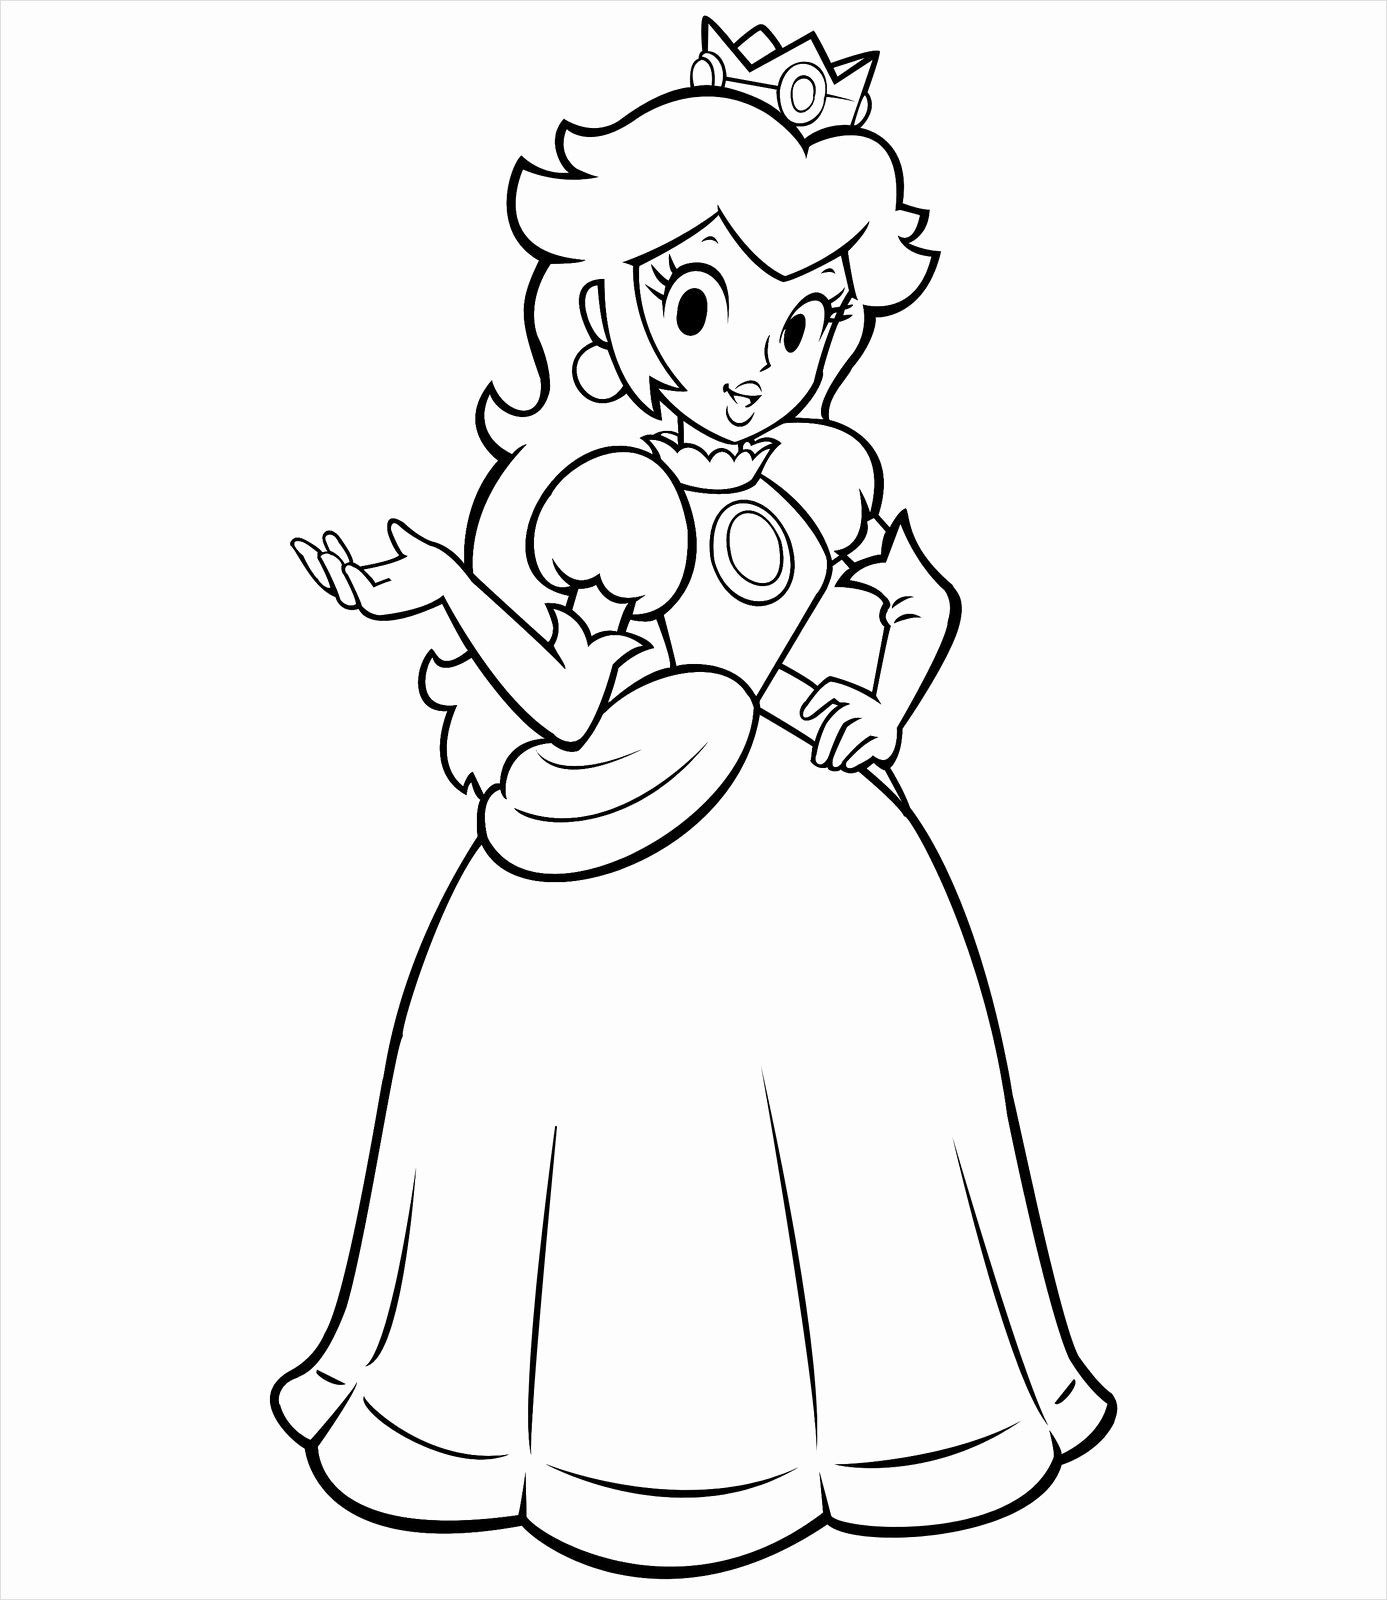 Colouring Pages Princess Peach From The Thousands Of Photos Online About Colouring Pa Princess Coloring Pages Mario Coloring Pages Super Mario Coloring Pages